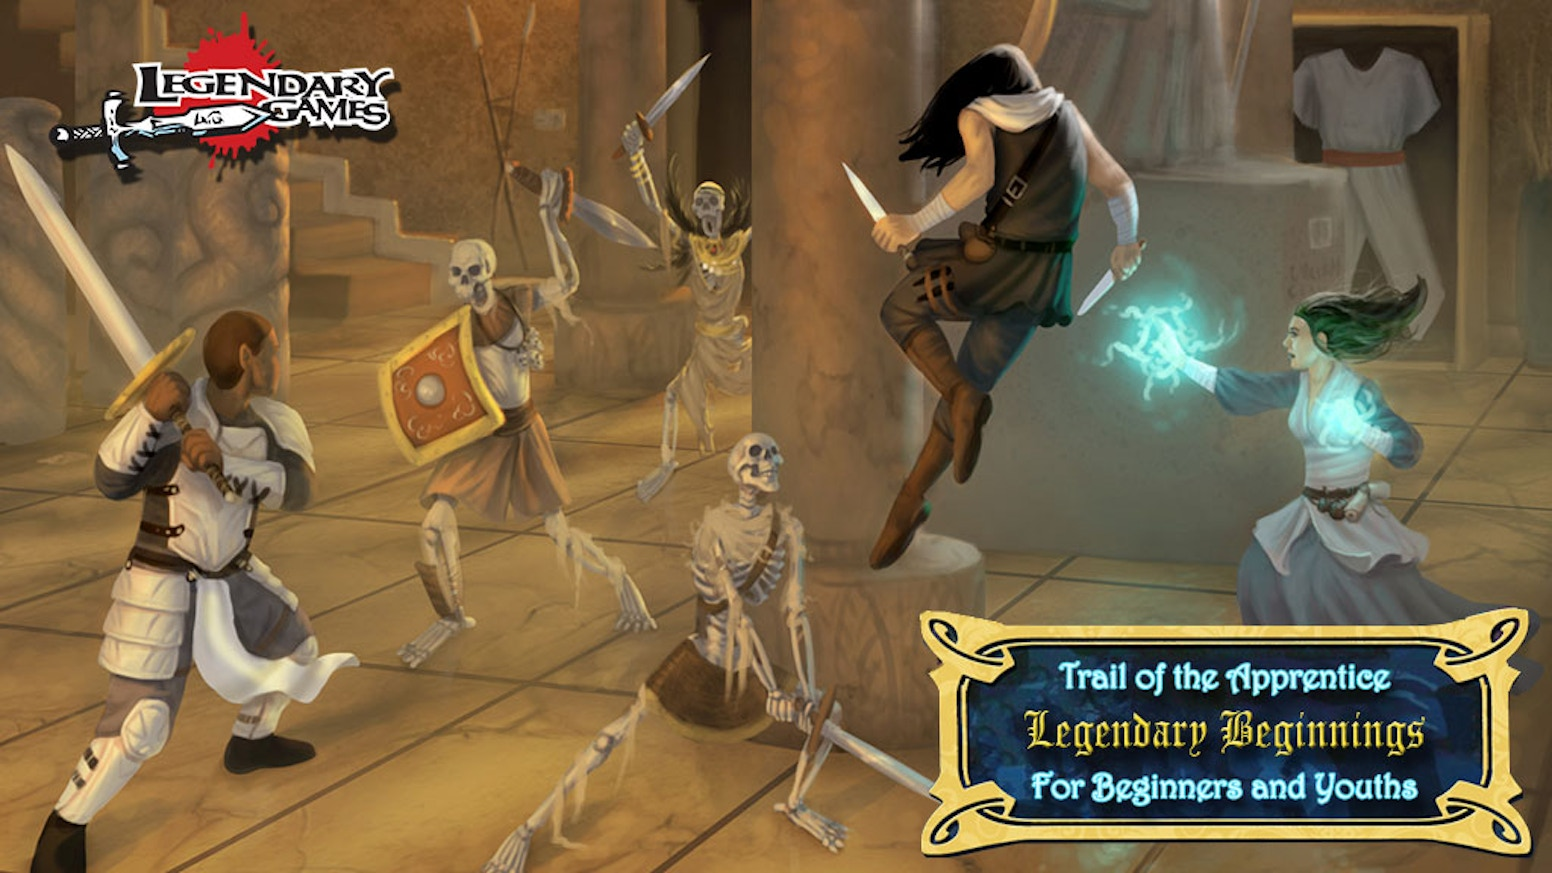 This action-packed 5-part adventure saga for Pathfinder RPG and 5E is an amazing introduction to new or younger players & gamemasters.